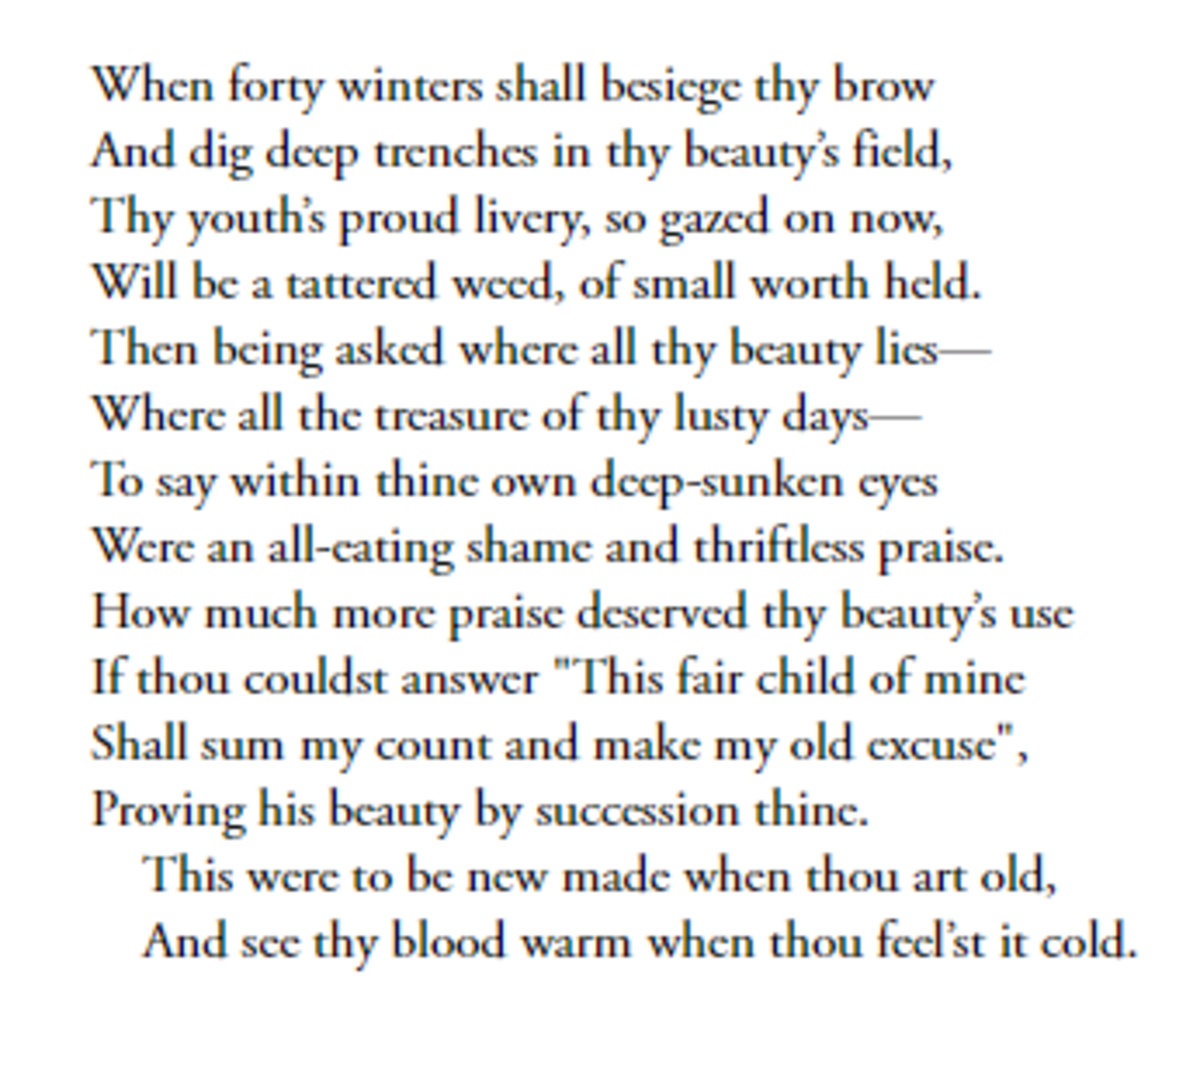 Sonnet 2 by William Shakespeare